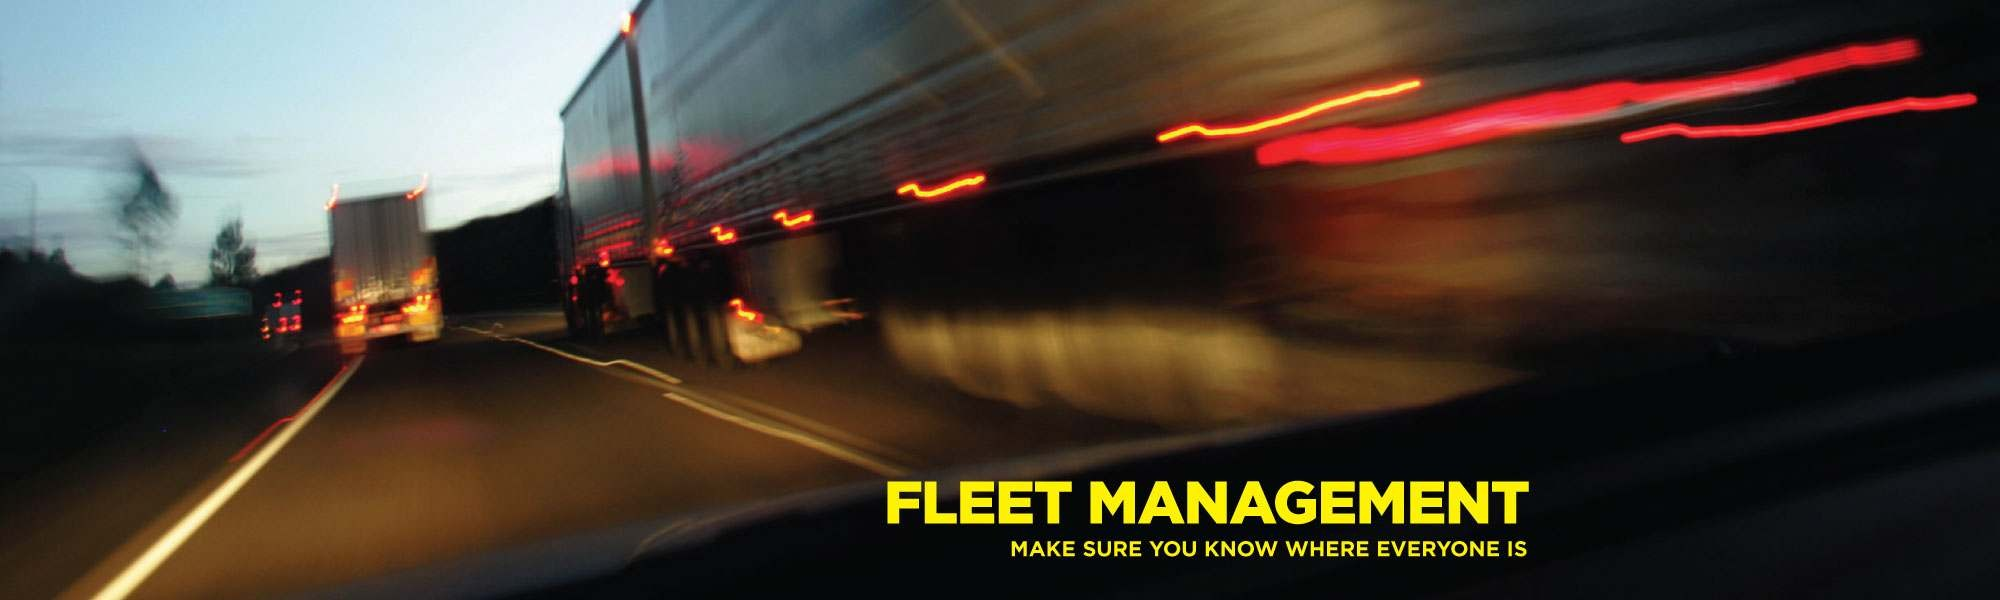 fleet-management-eng